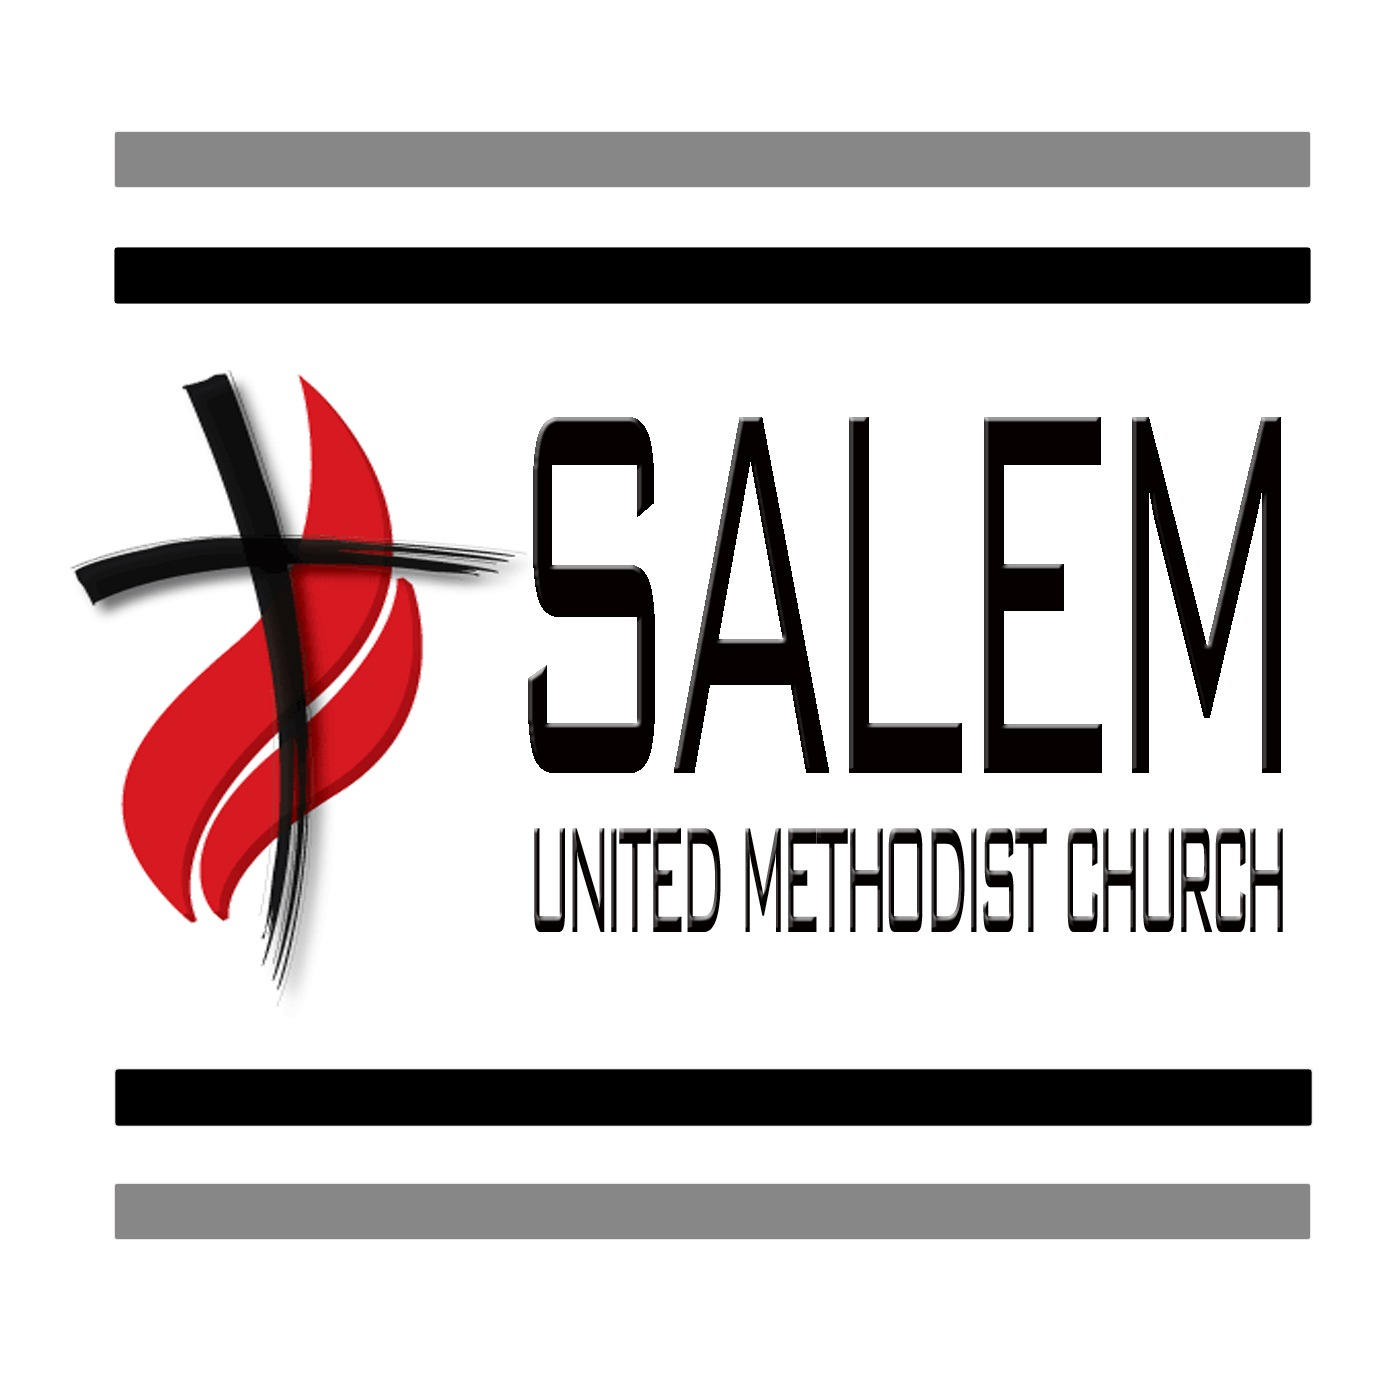 Salem United Methodist Church, Pastor Justin Collett